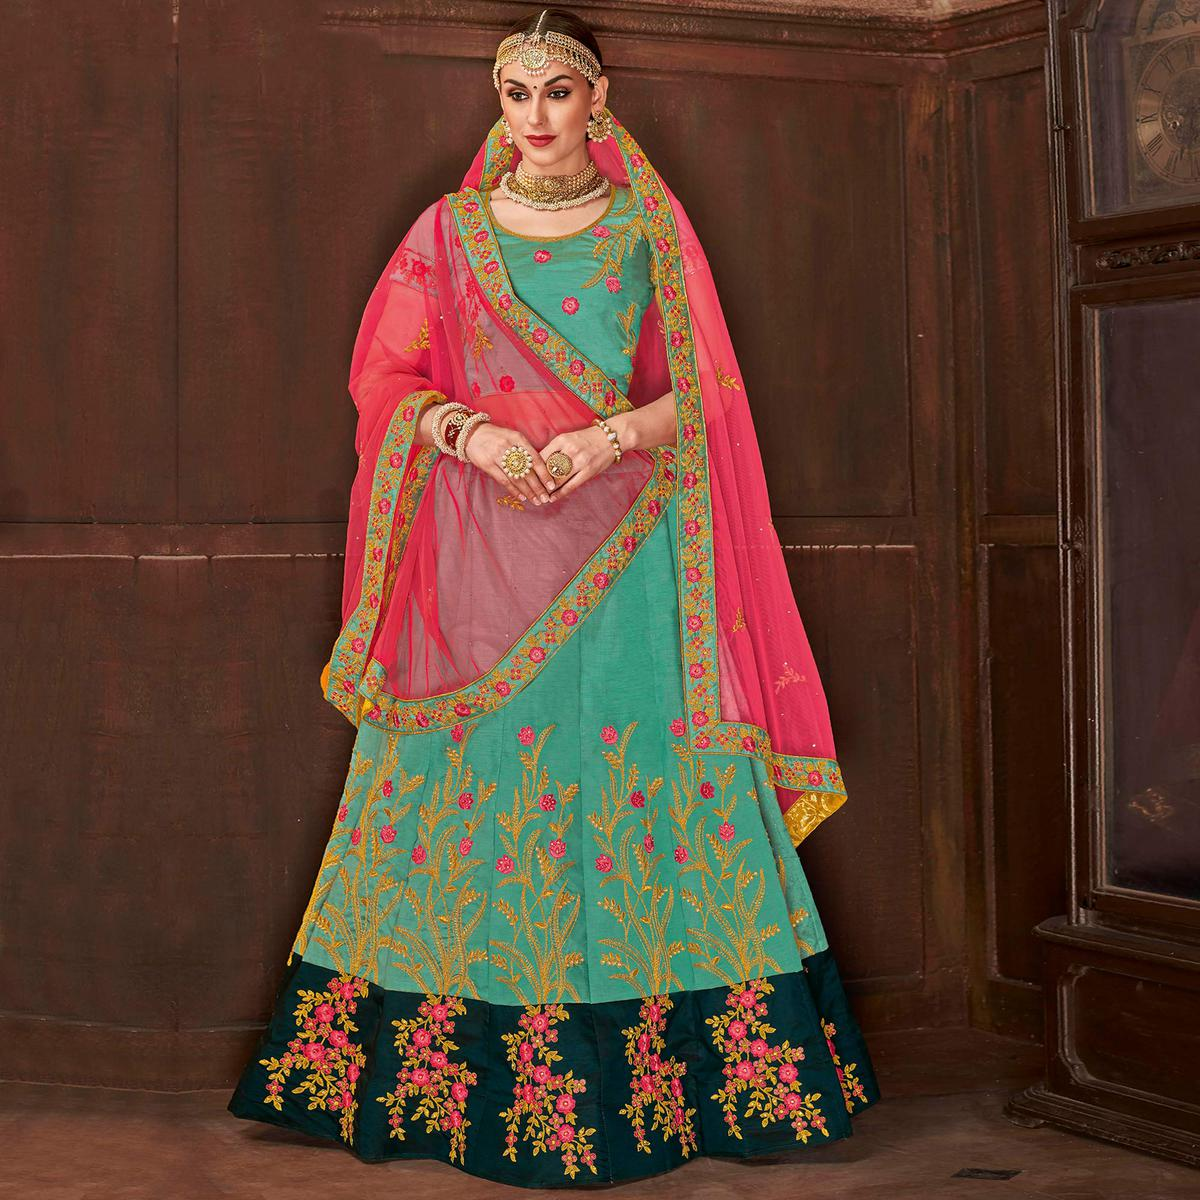 Sensational Turquoise Green Colored Partywear Embroidered Satin Silk Lehenga Choli